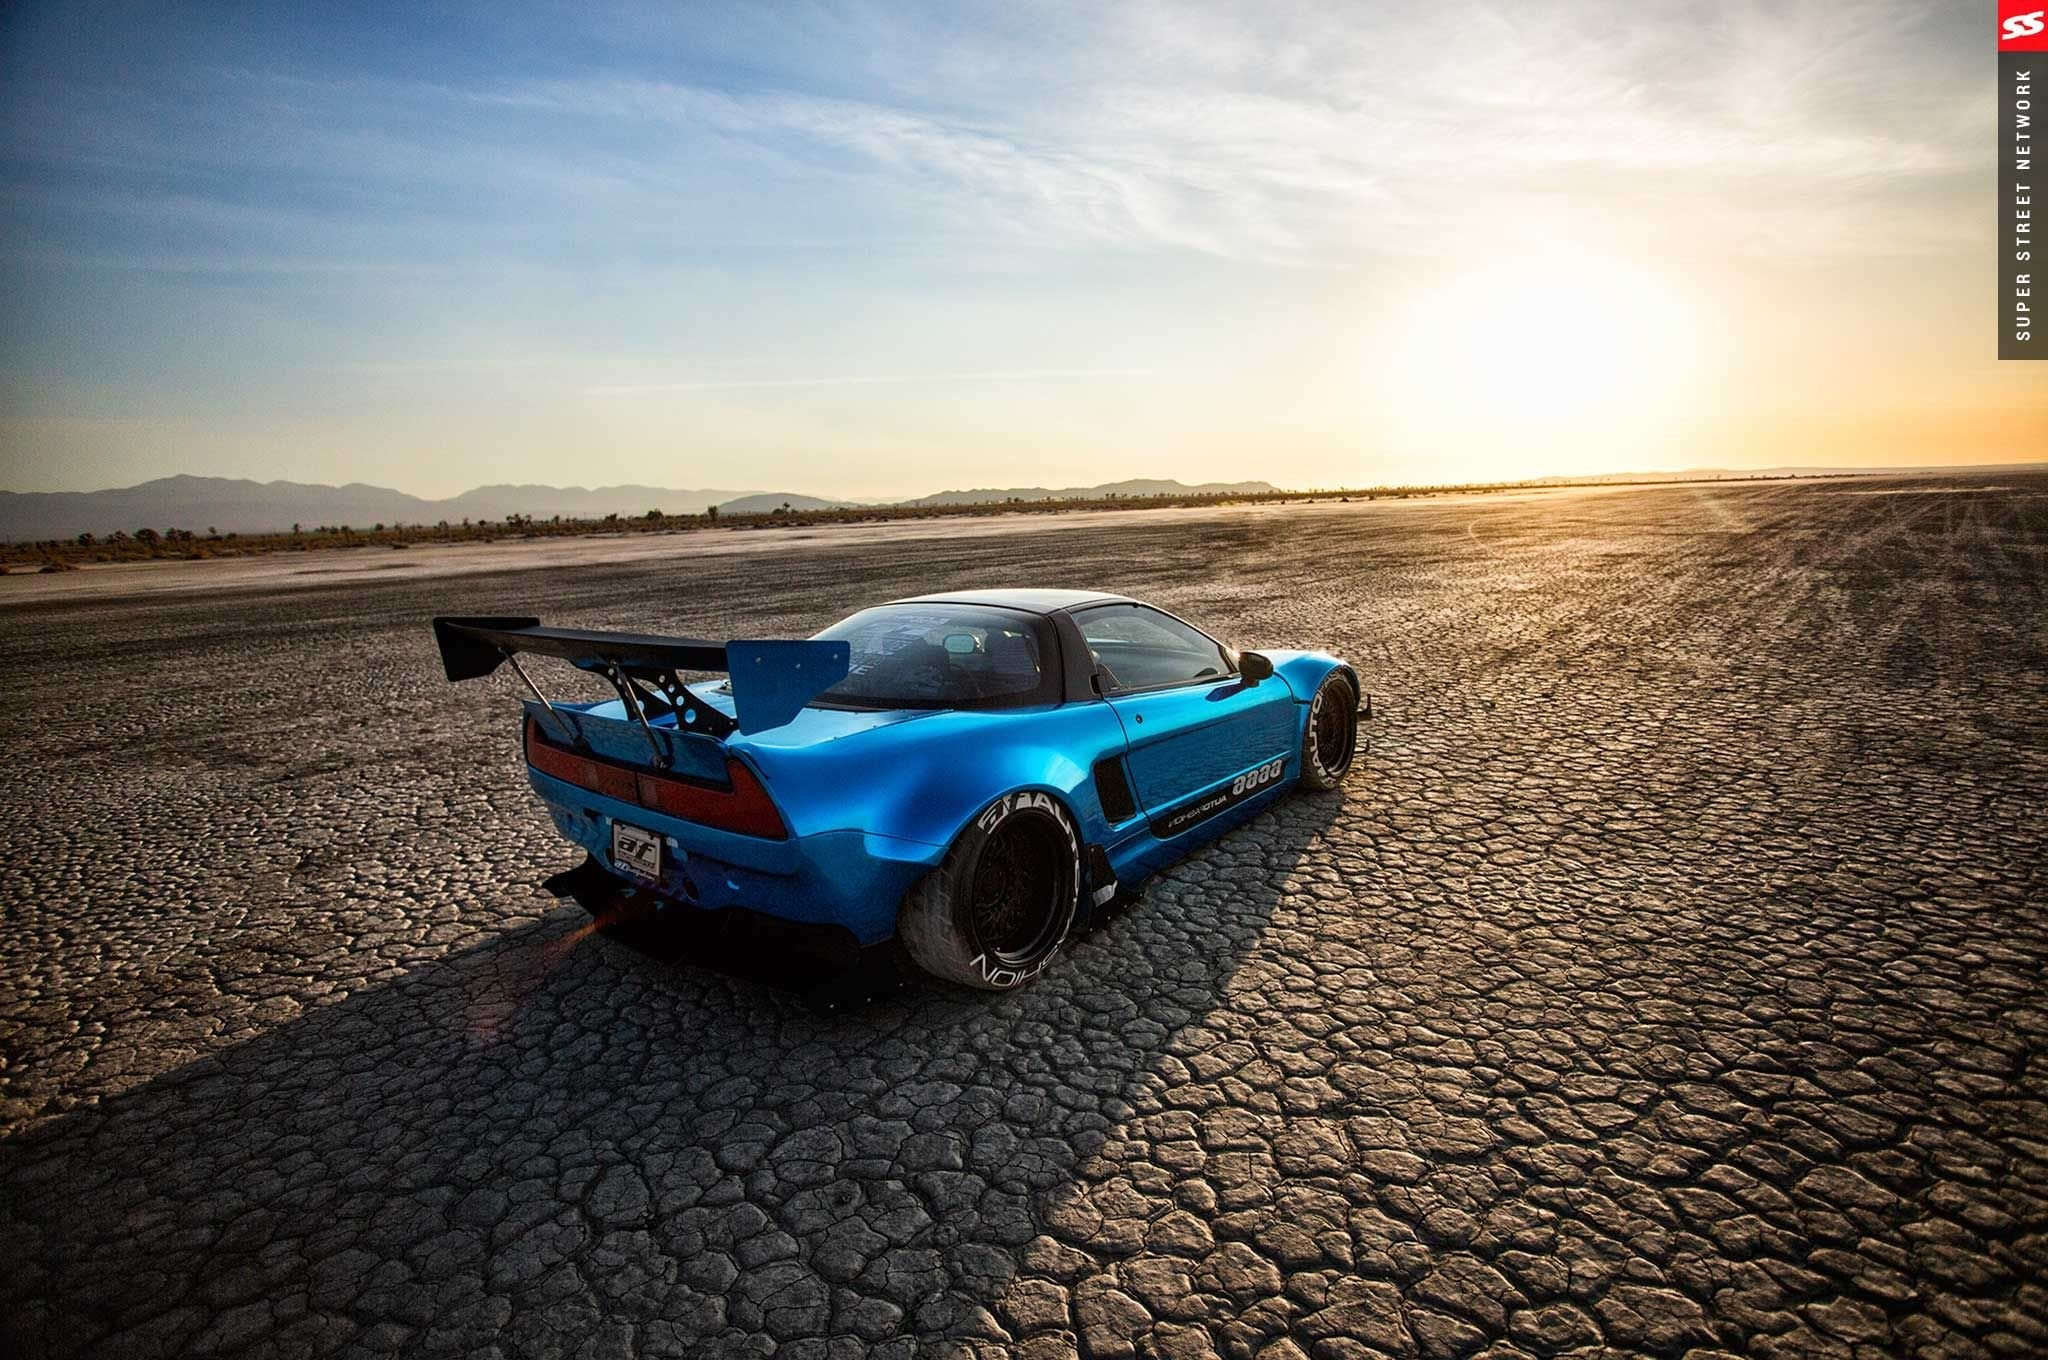 Res: 2048x1360, 1992 acura nsx rocket bunny cars coupe modified blue wallpaper |   | 855631 | WallpaperUP